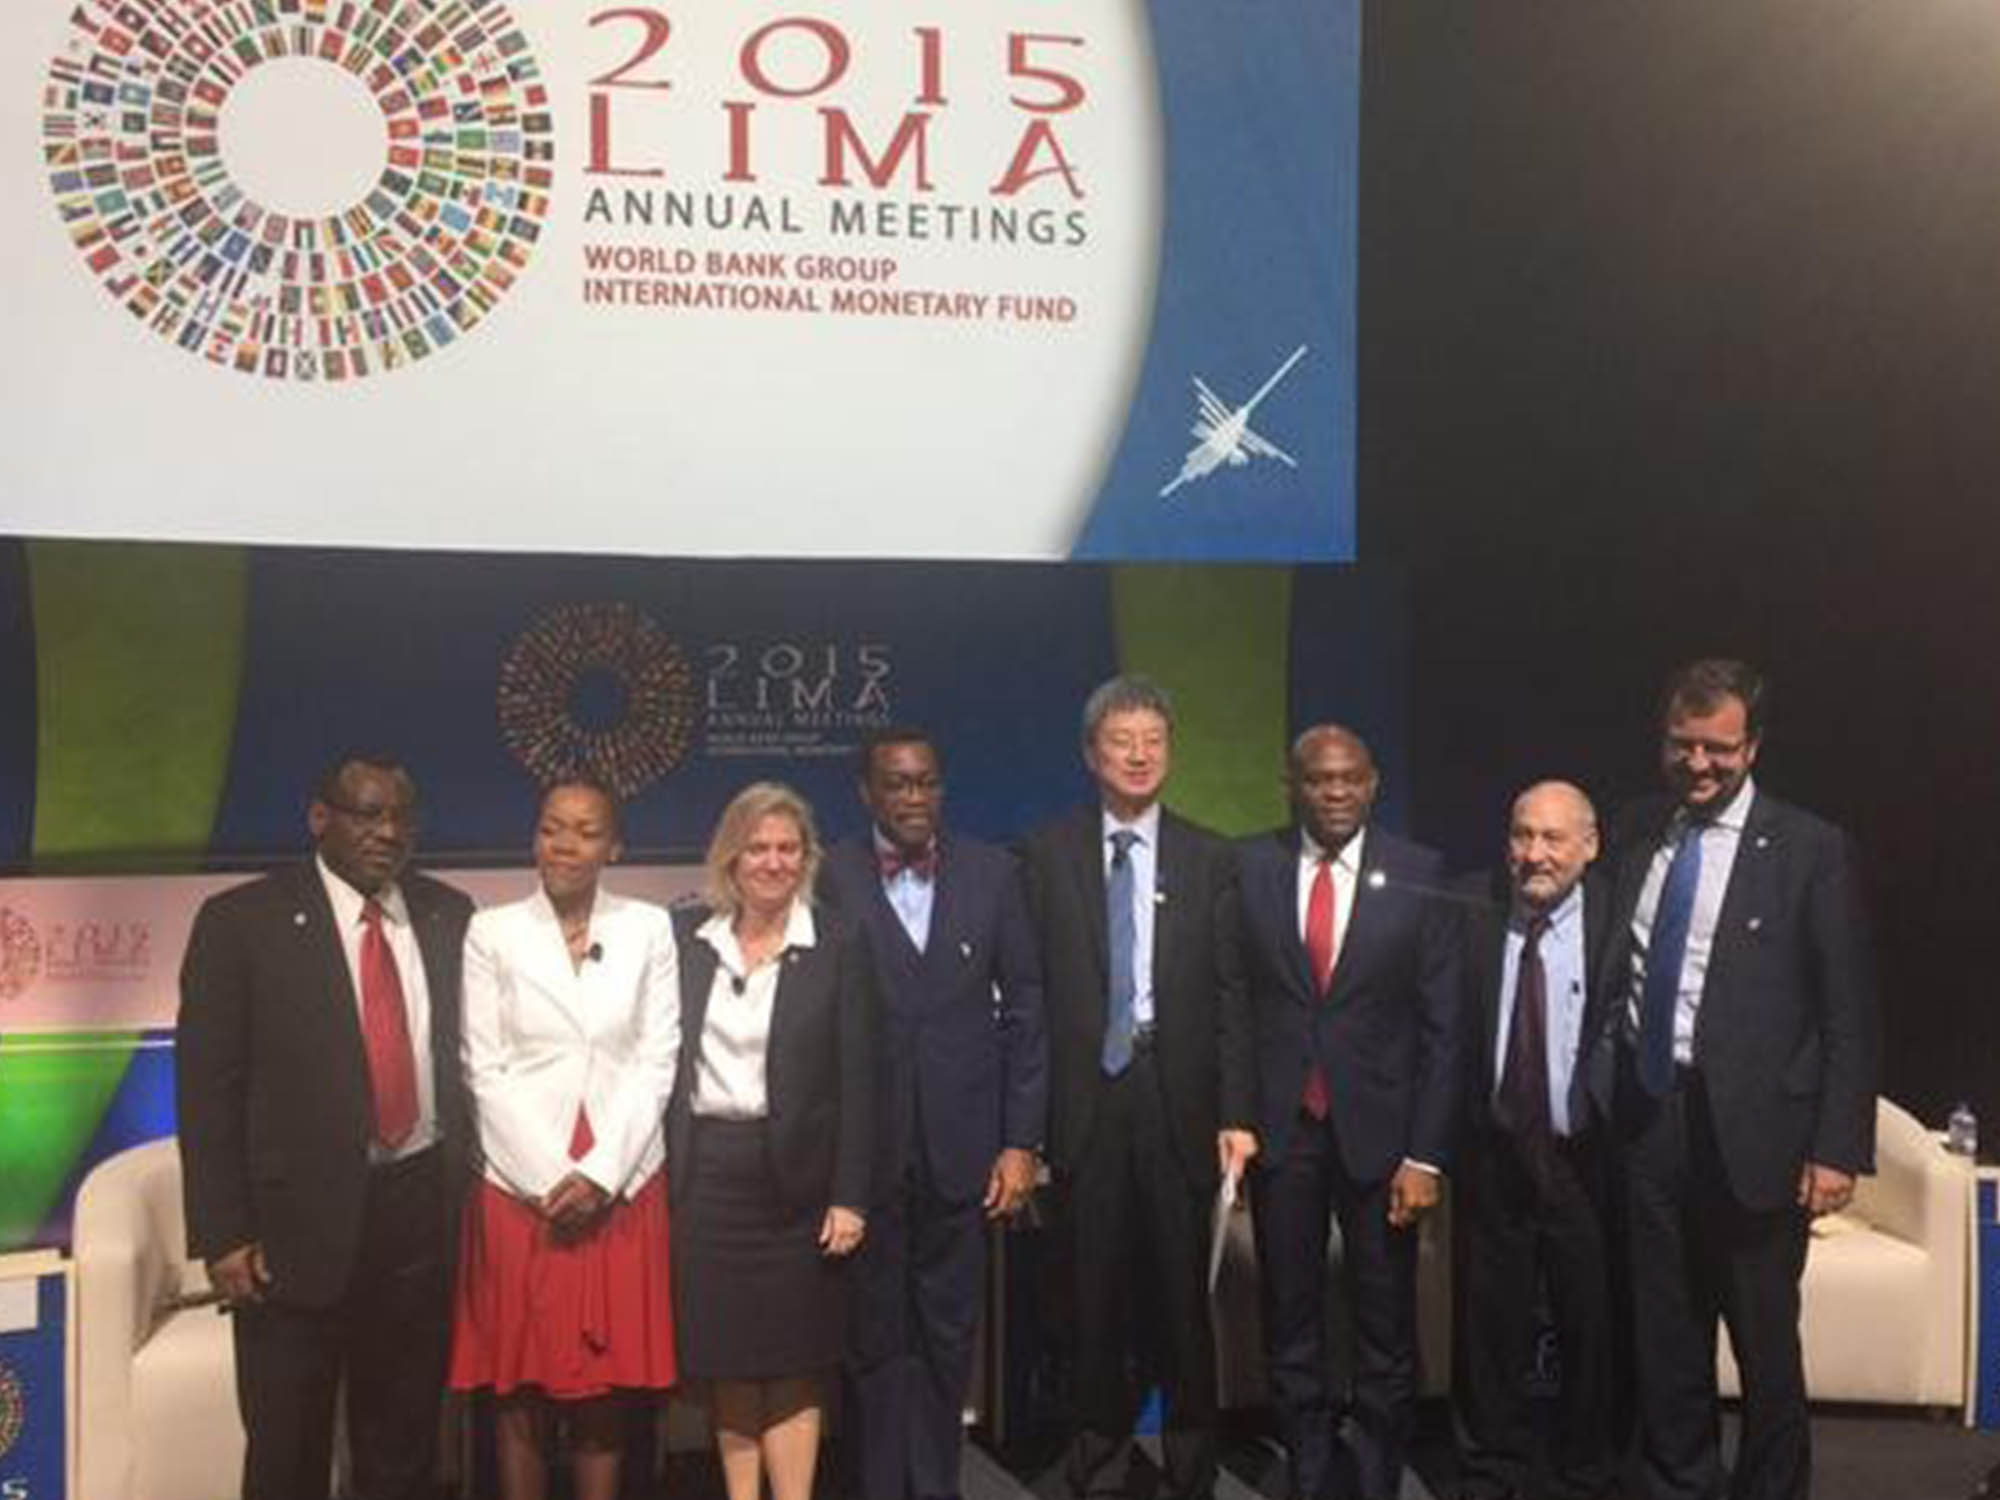 L-R: Claver Gatete, Minister for Finance and Economic Planning, Rwanda; Nikiwe Bikitsha, journalist and moderator of the panel; Magdalena Andersson, Minister for Finance, Sweden; Akinwumi Adesina, President, African Development Bank ; Tony O. Elumelu CON, Founder, Tony Elumelu Foundation and Chairman, Heirs Holdings; Joseph Stiglitz, Professor of Economics, Columbia University, Recipient of 2001 Nobel Memorial Prize in Economic Sciences; Min Zhu, Deputy Managing Director, IMF and Bertrand Badré, Managing Director and Chief Financial Officer, World Bank Group.